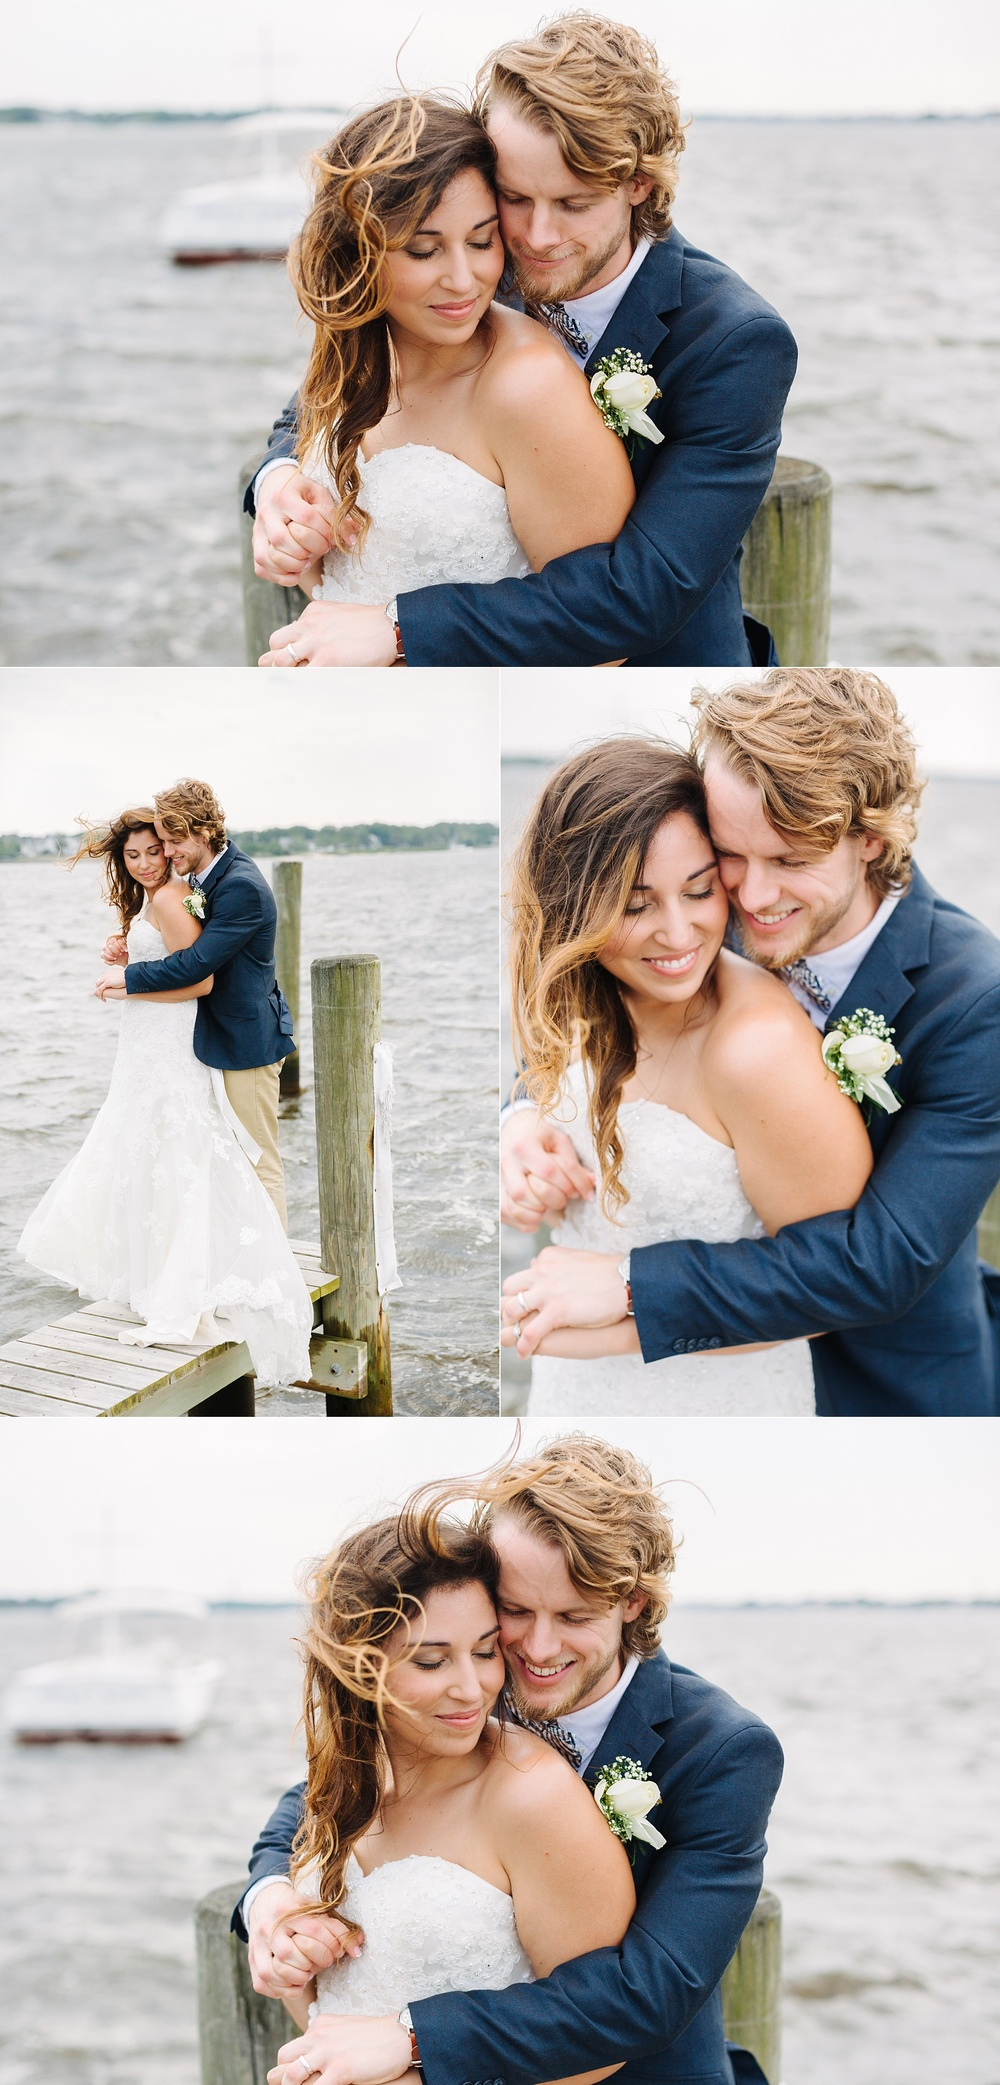 jake and katie photography toms river new jersery wedding jesse drea-24